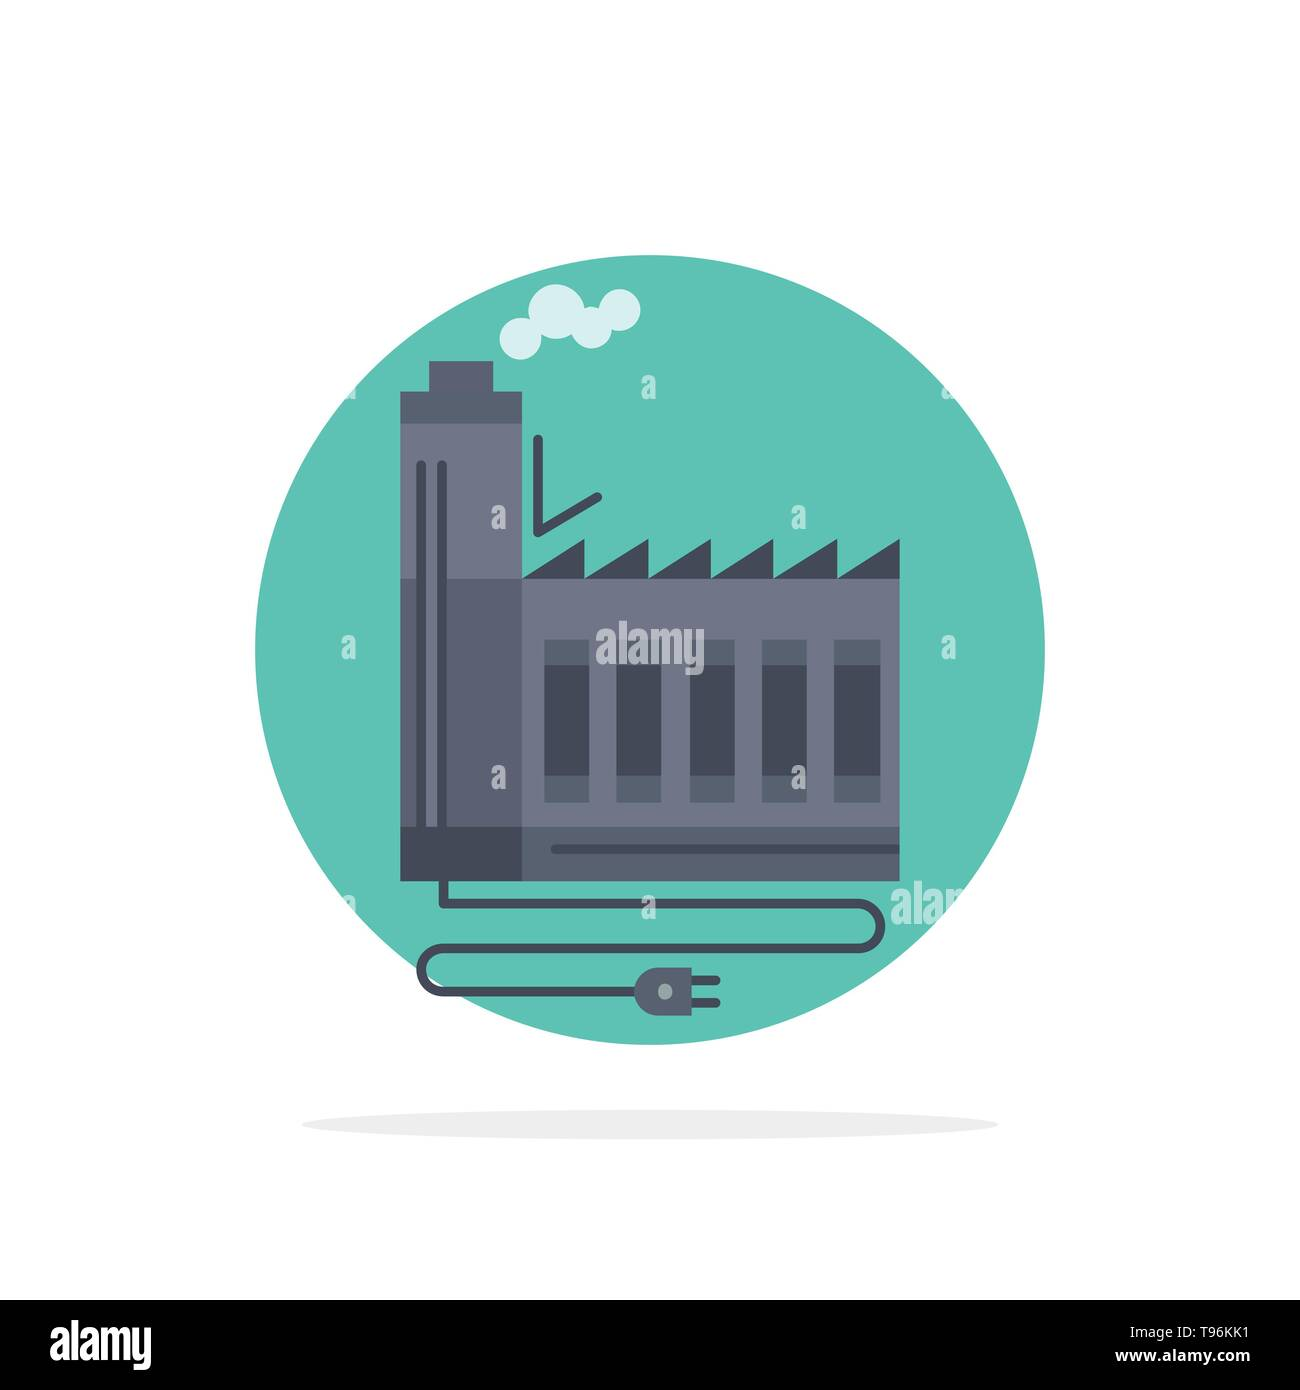 Consumption, resource, energy, factory, manufacturing Flat Color Icon Vector - Stock Image